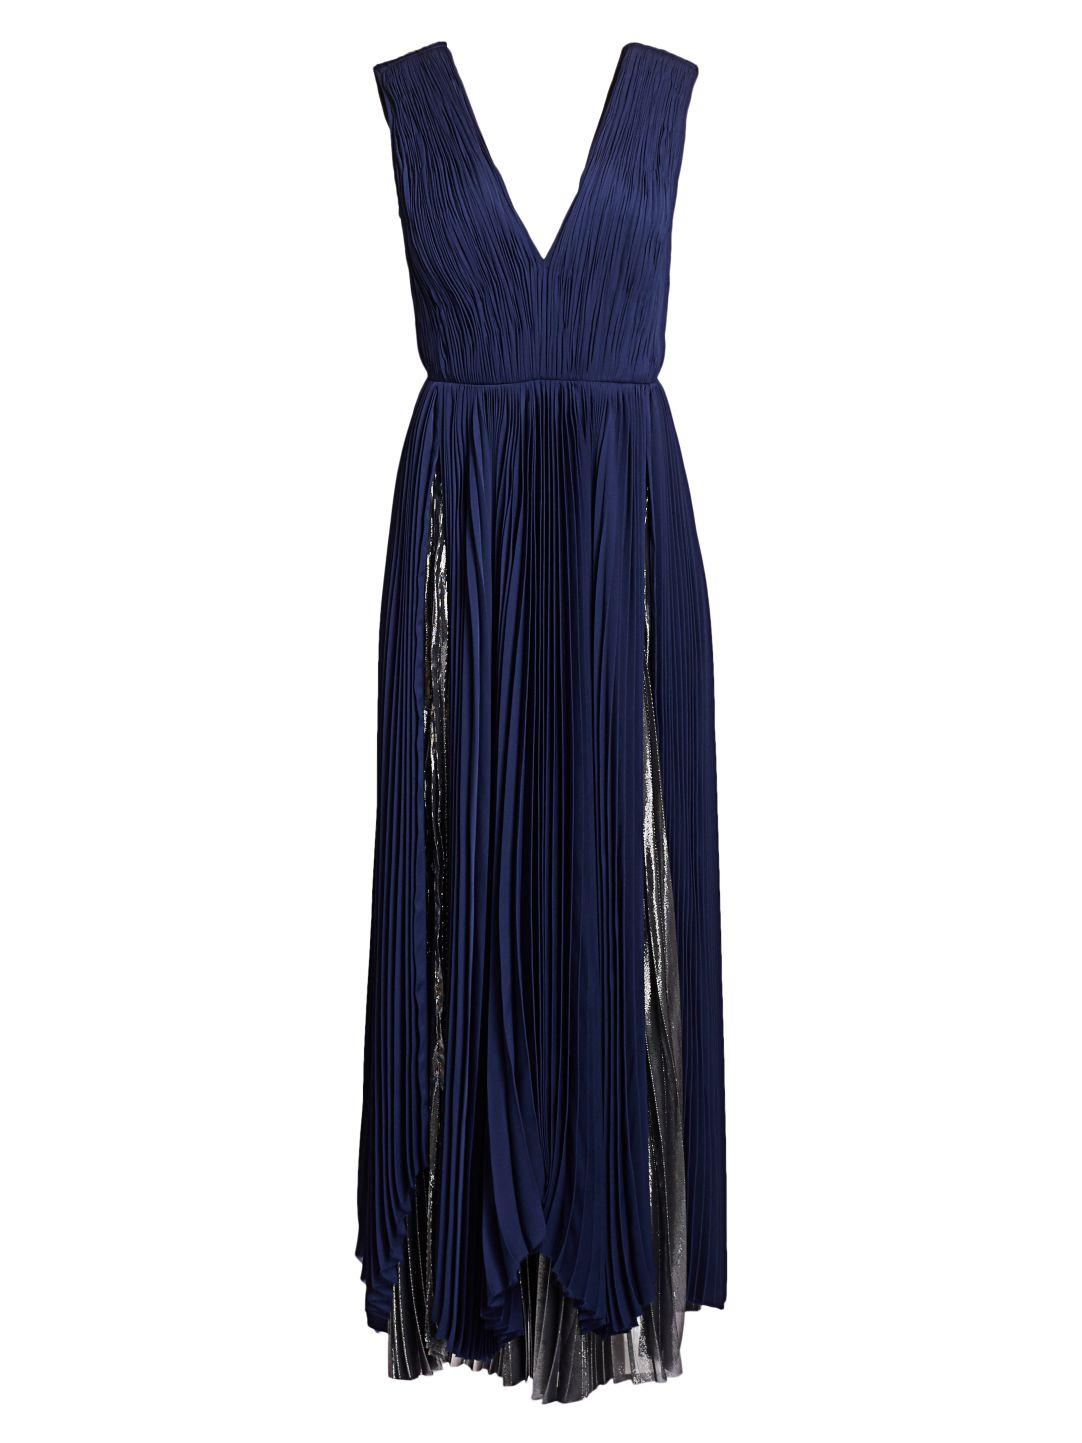 PLEATED METALLIC GOWN 5